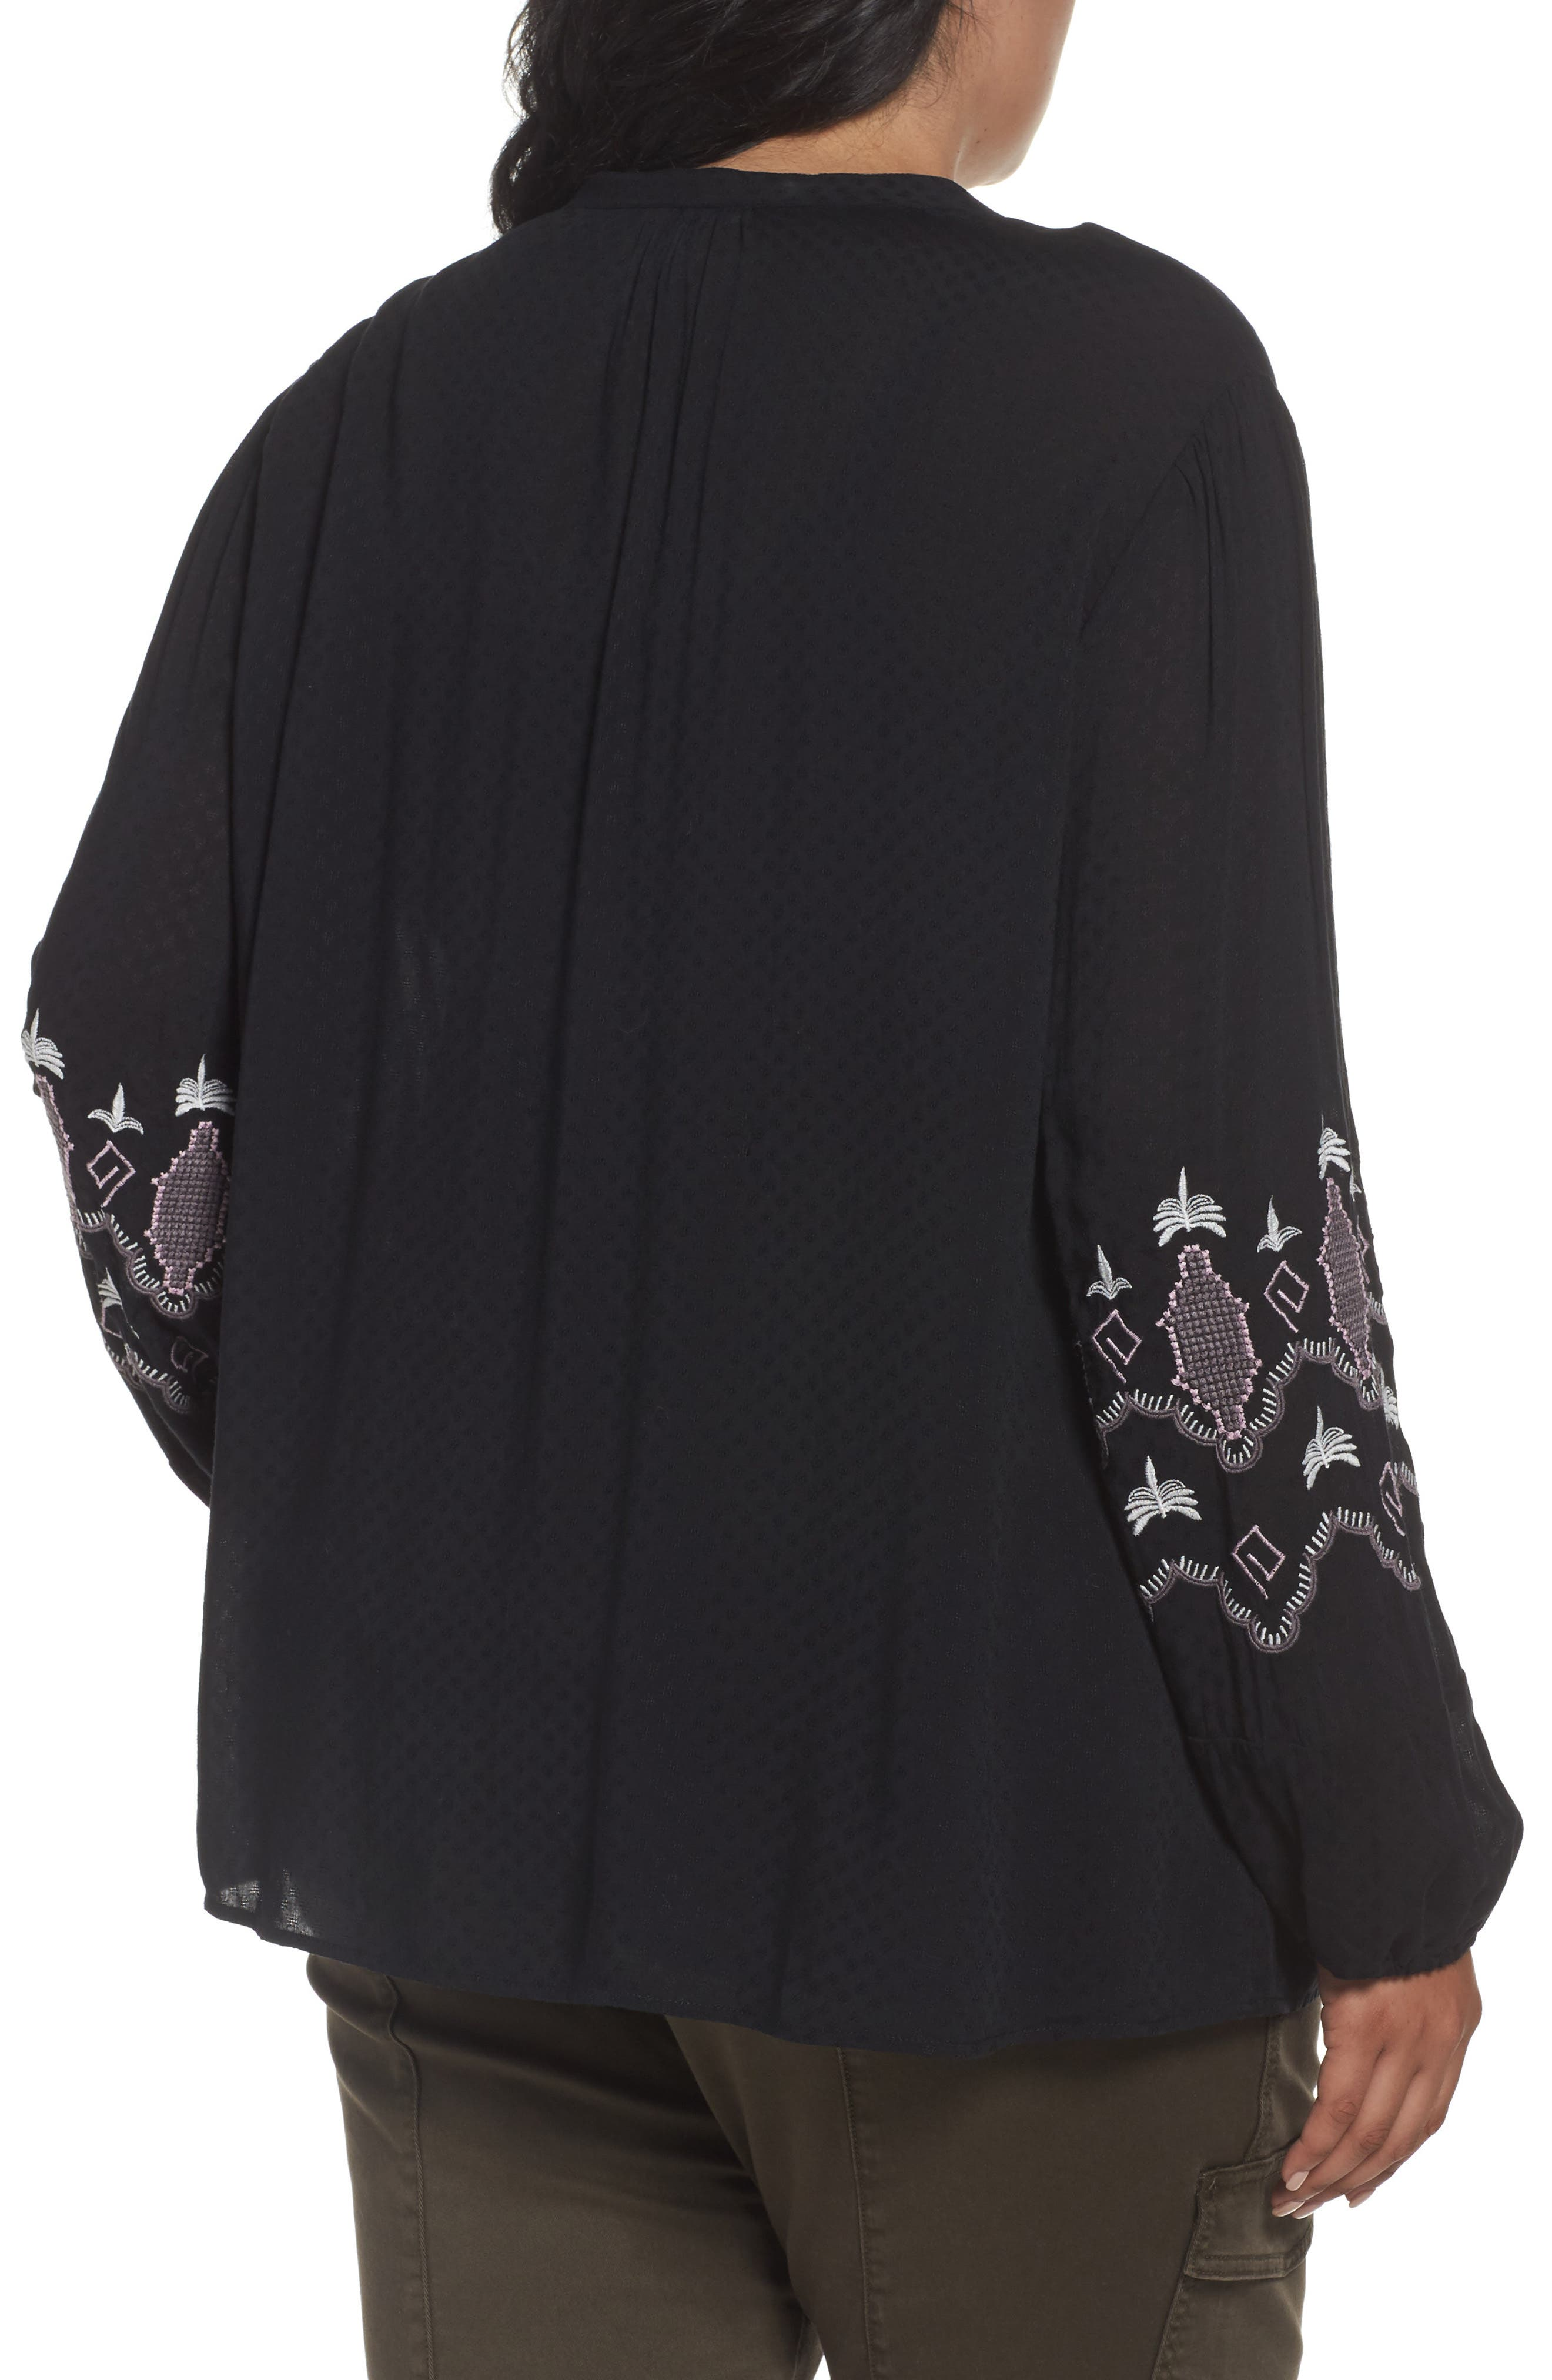 Embroidered Blouse,                             Alternate thumbnail 2, color,                             Black- Purple Embroidery